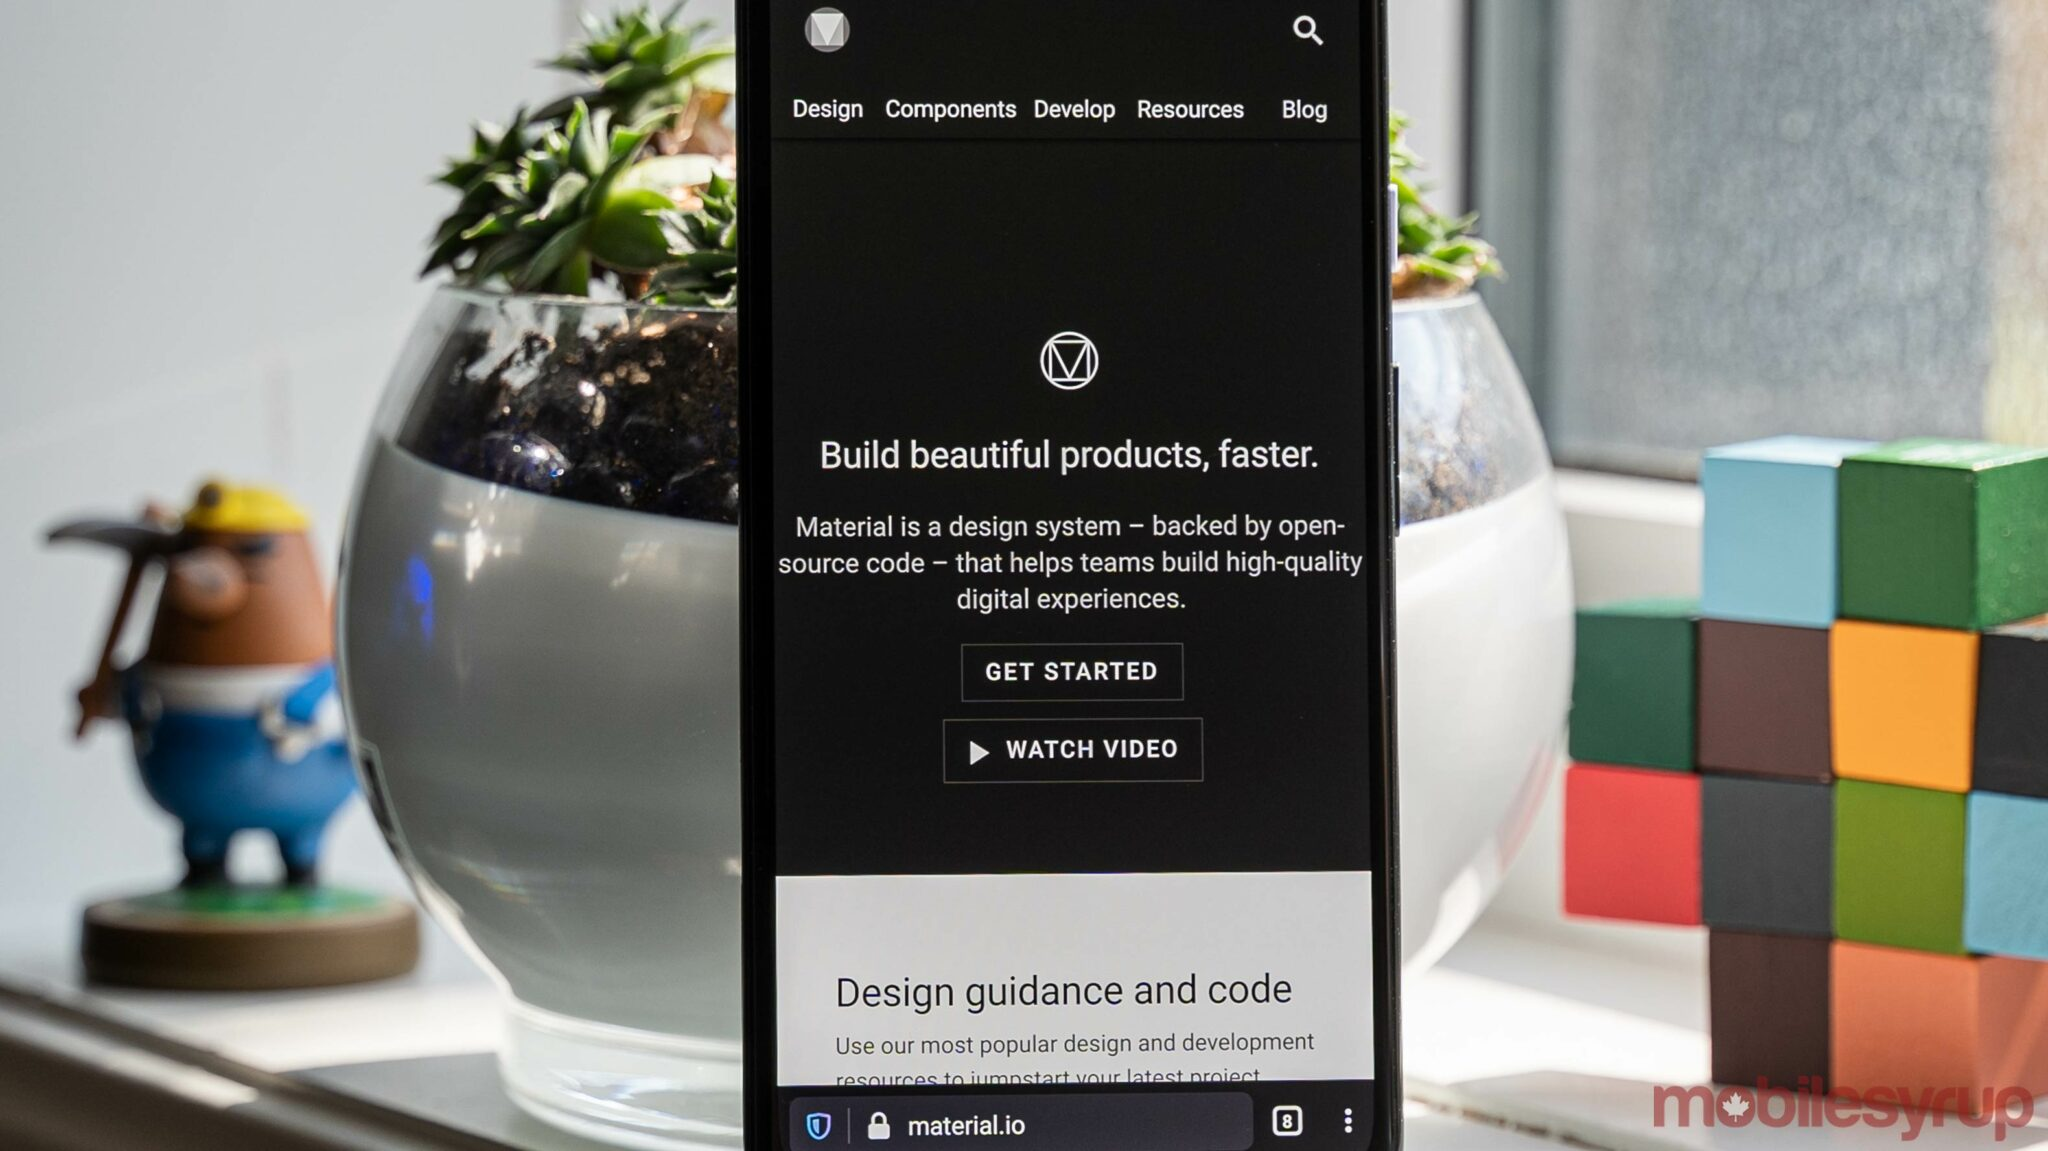 Google rolls out Material Design updates to improve apps built for big screens